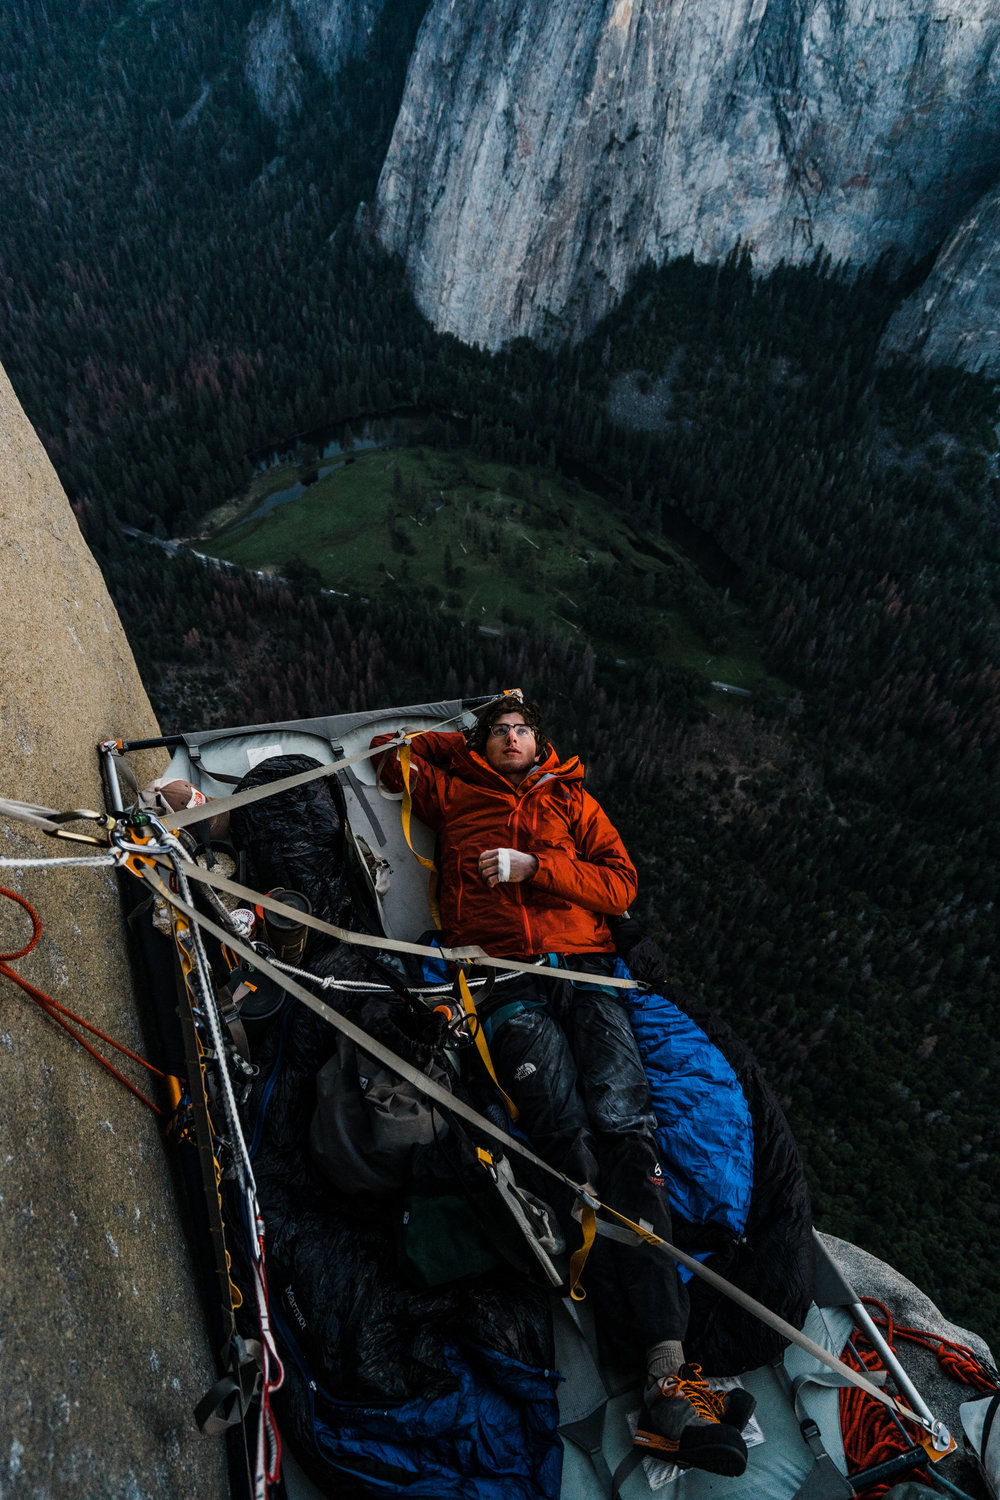 climbing el capitan in yosemite national park | freerider on el cap | yosemite adventure photographer